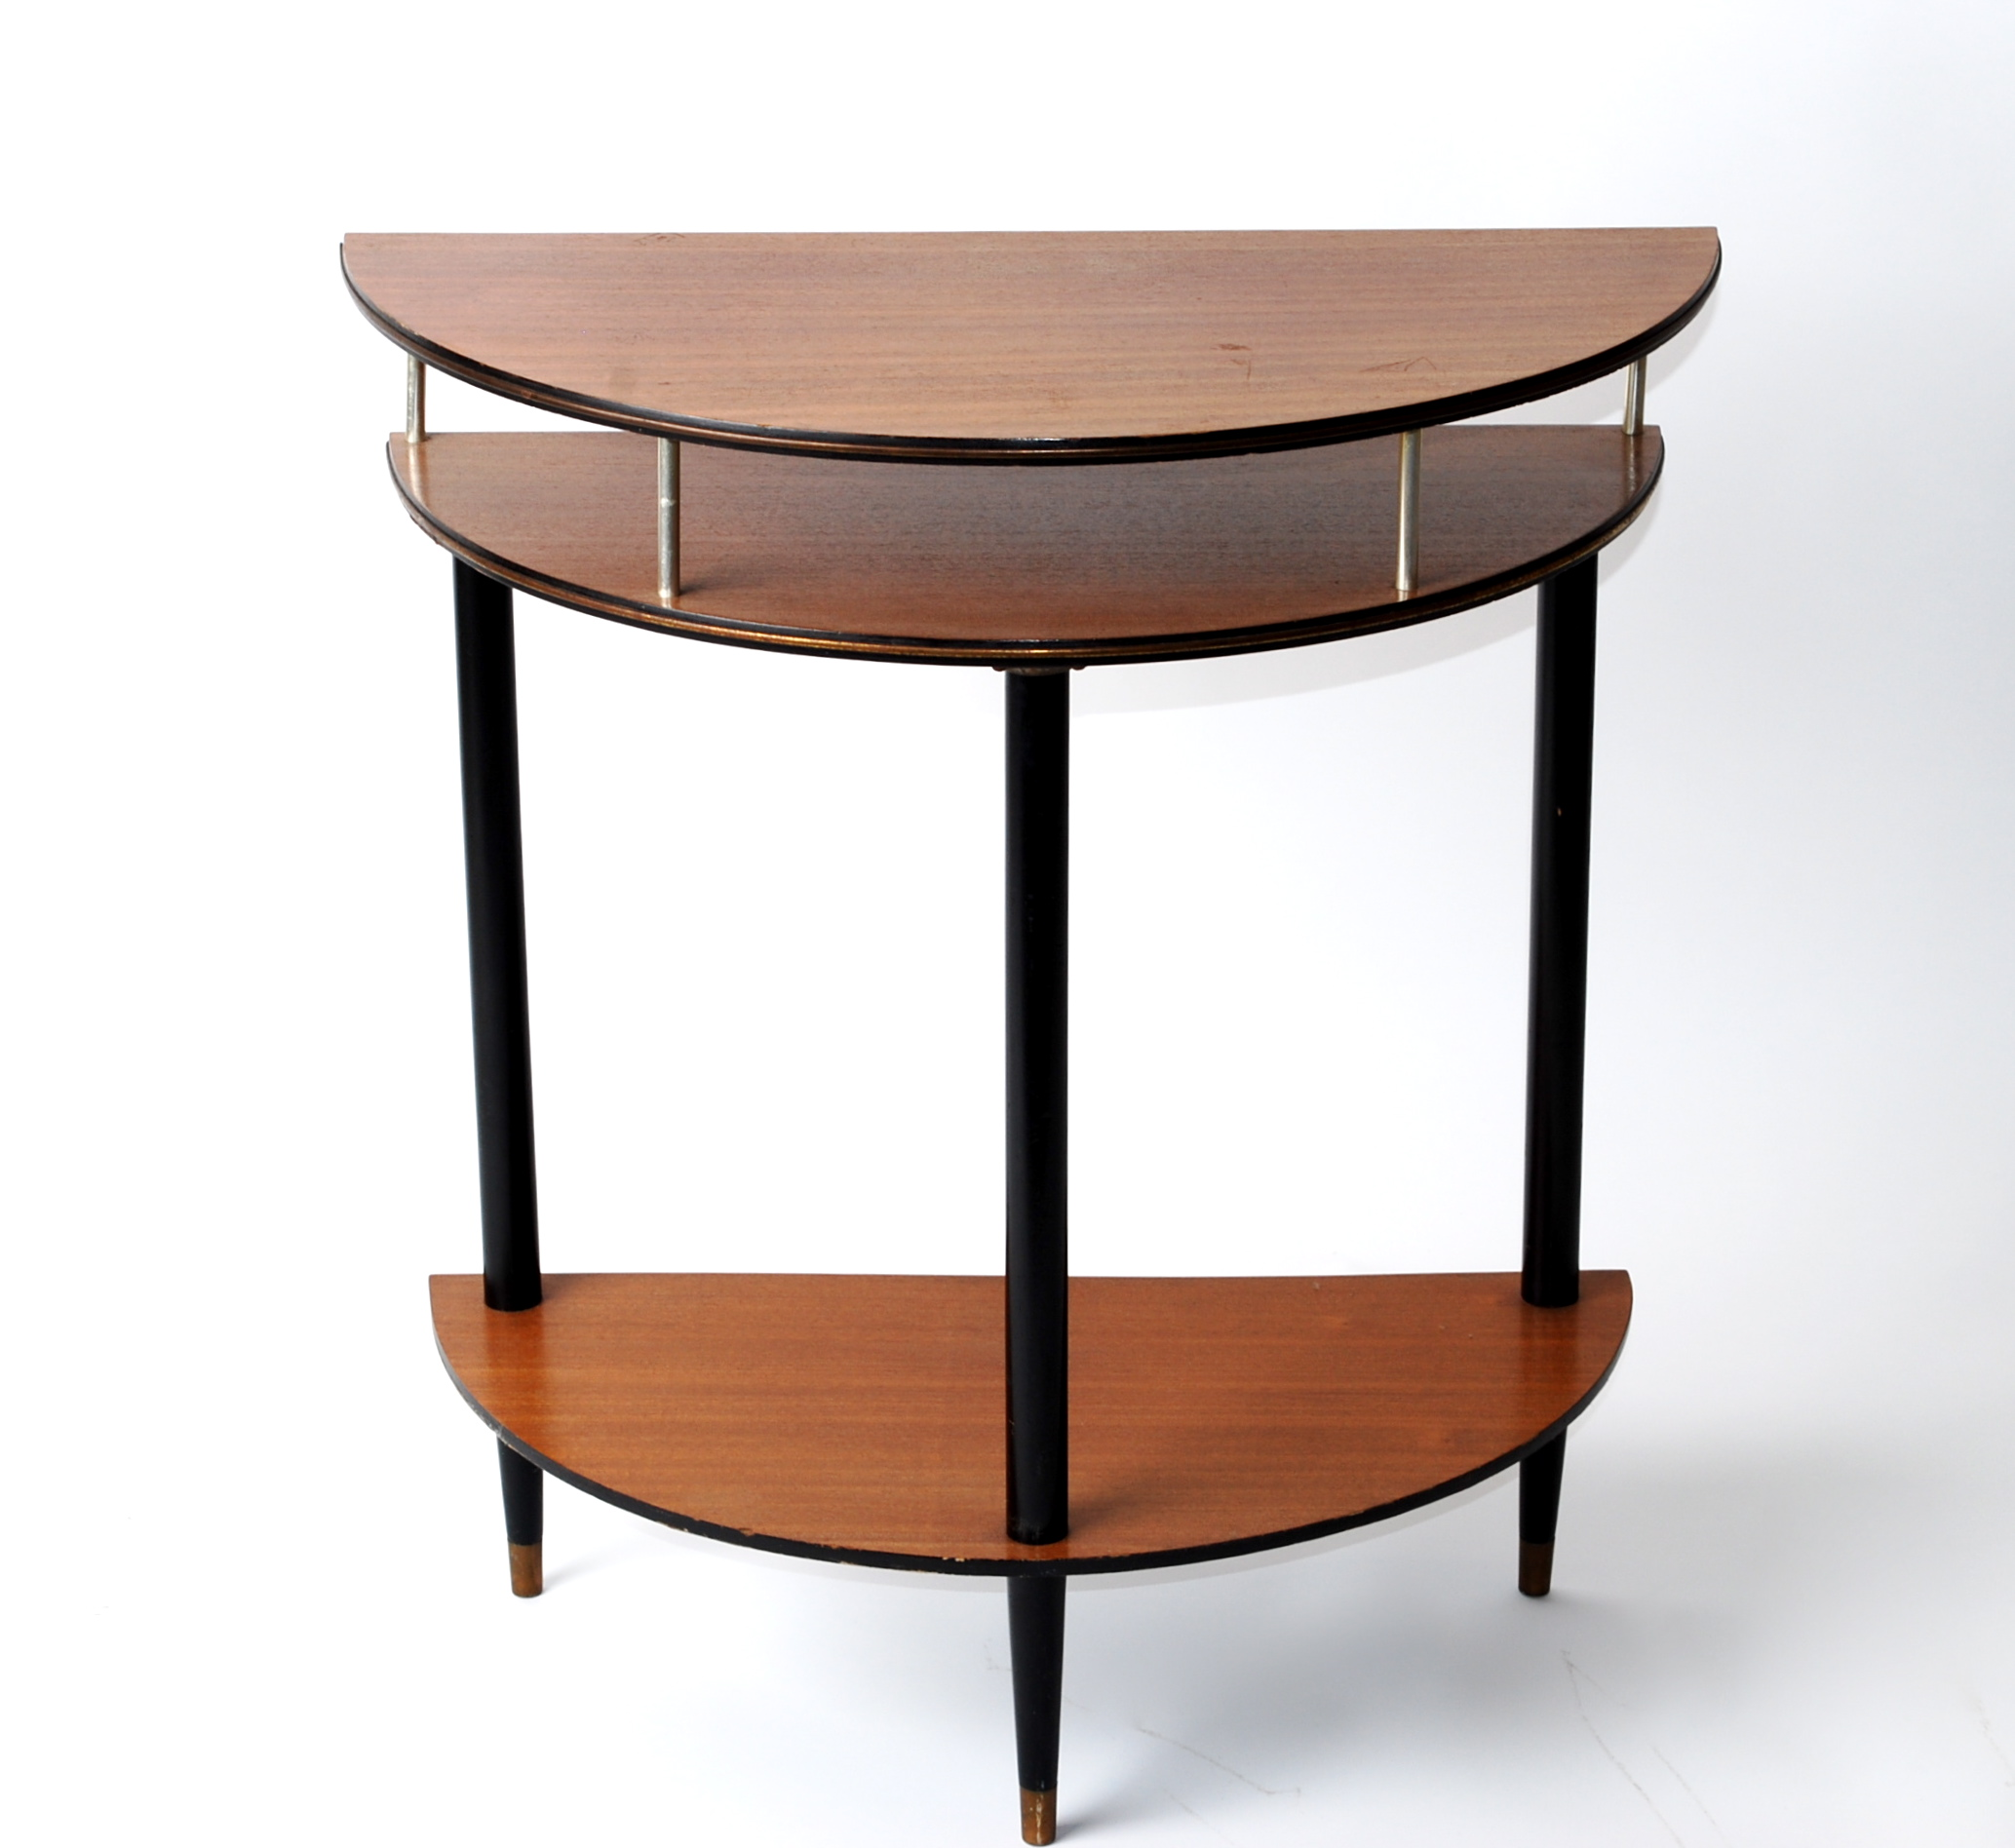 half moon end tables table furniture small slim accent oak destination lighting entryway with storage oval glass and metal coffee dale tiffany aldridge lamp vintage oriental lamps